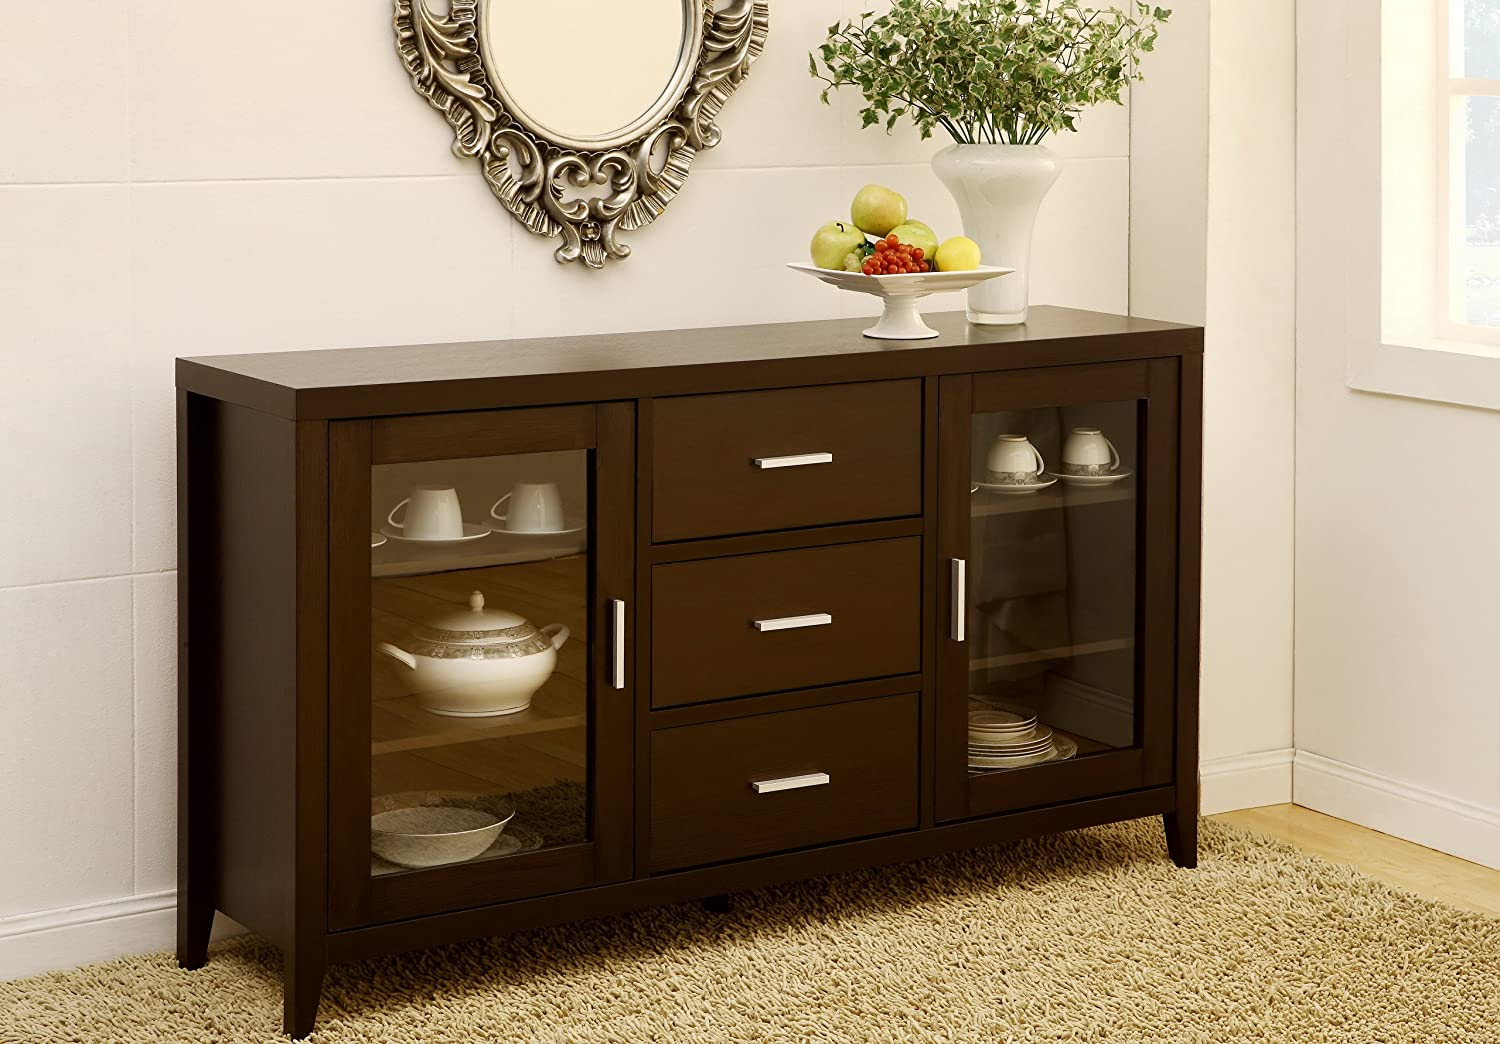 Nice Amazon.com   IoHOMES London Dining Buffet/TV Cabinet, Dark Espresso    Buffets U0026 Sideboards